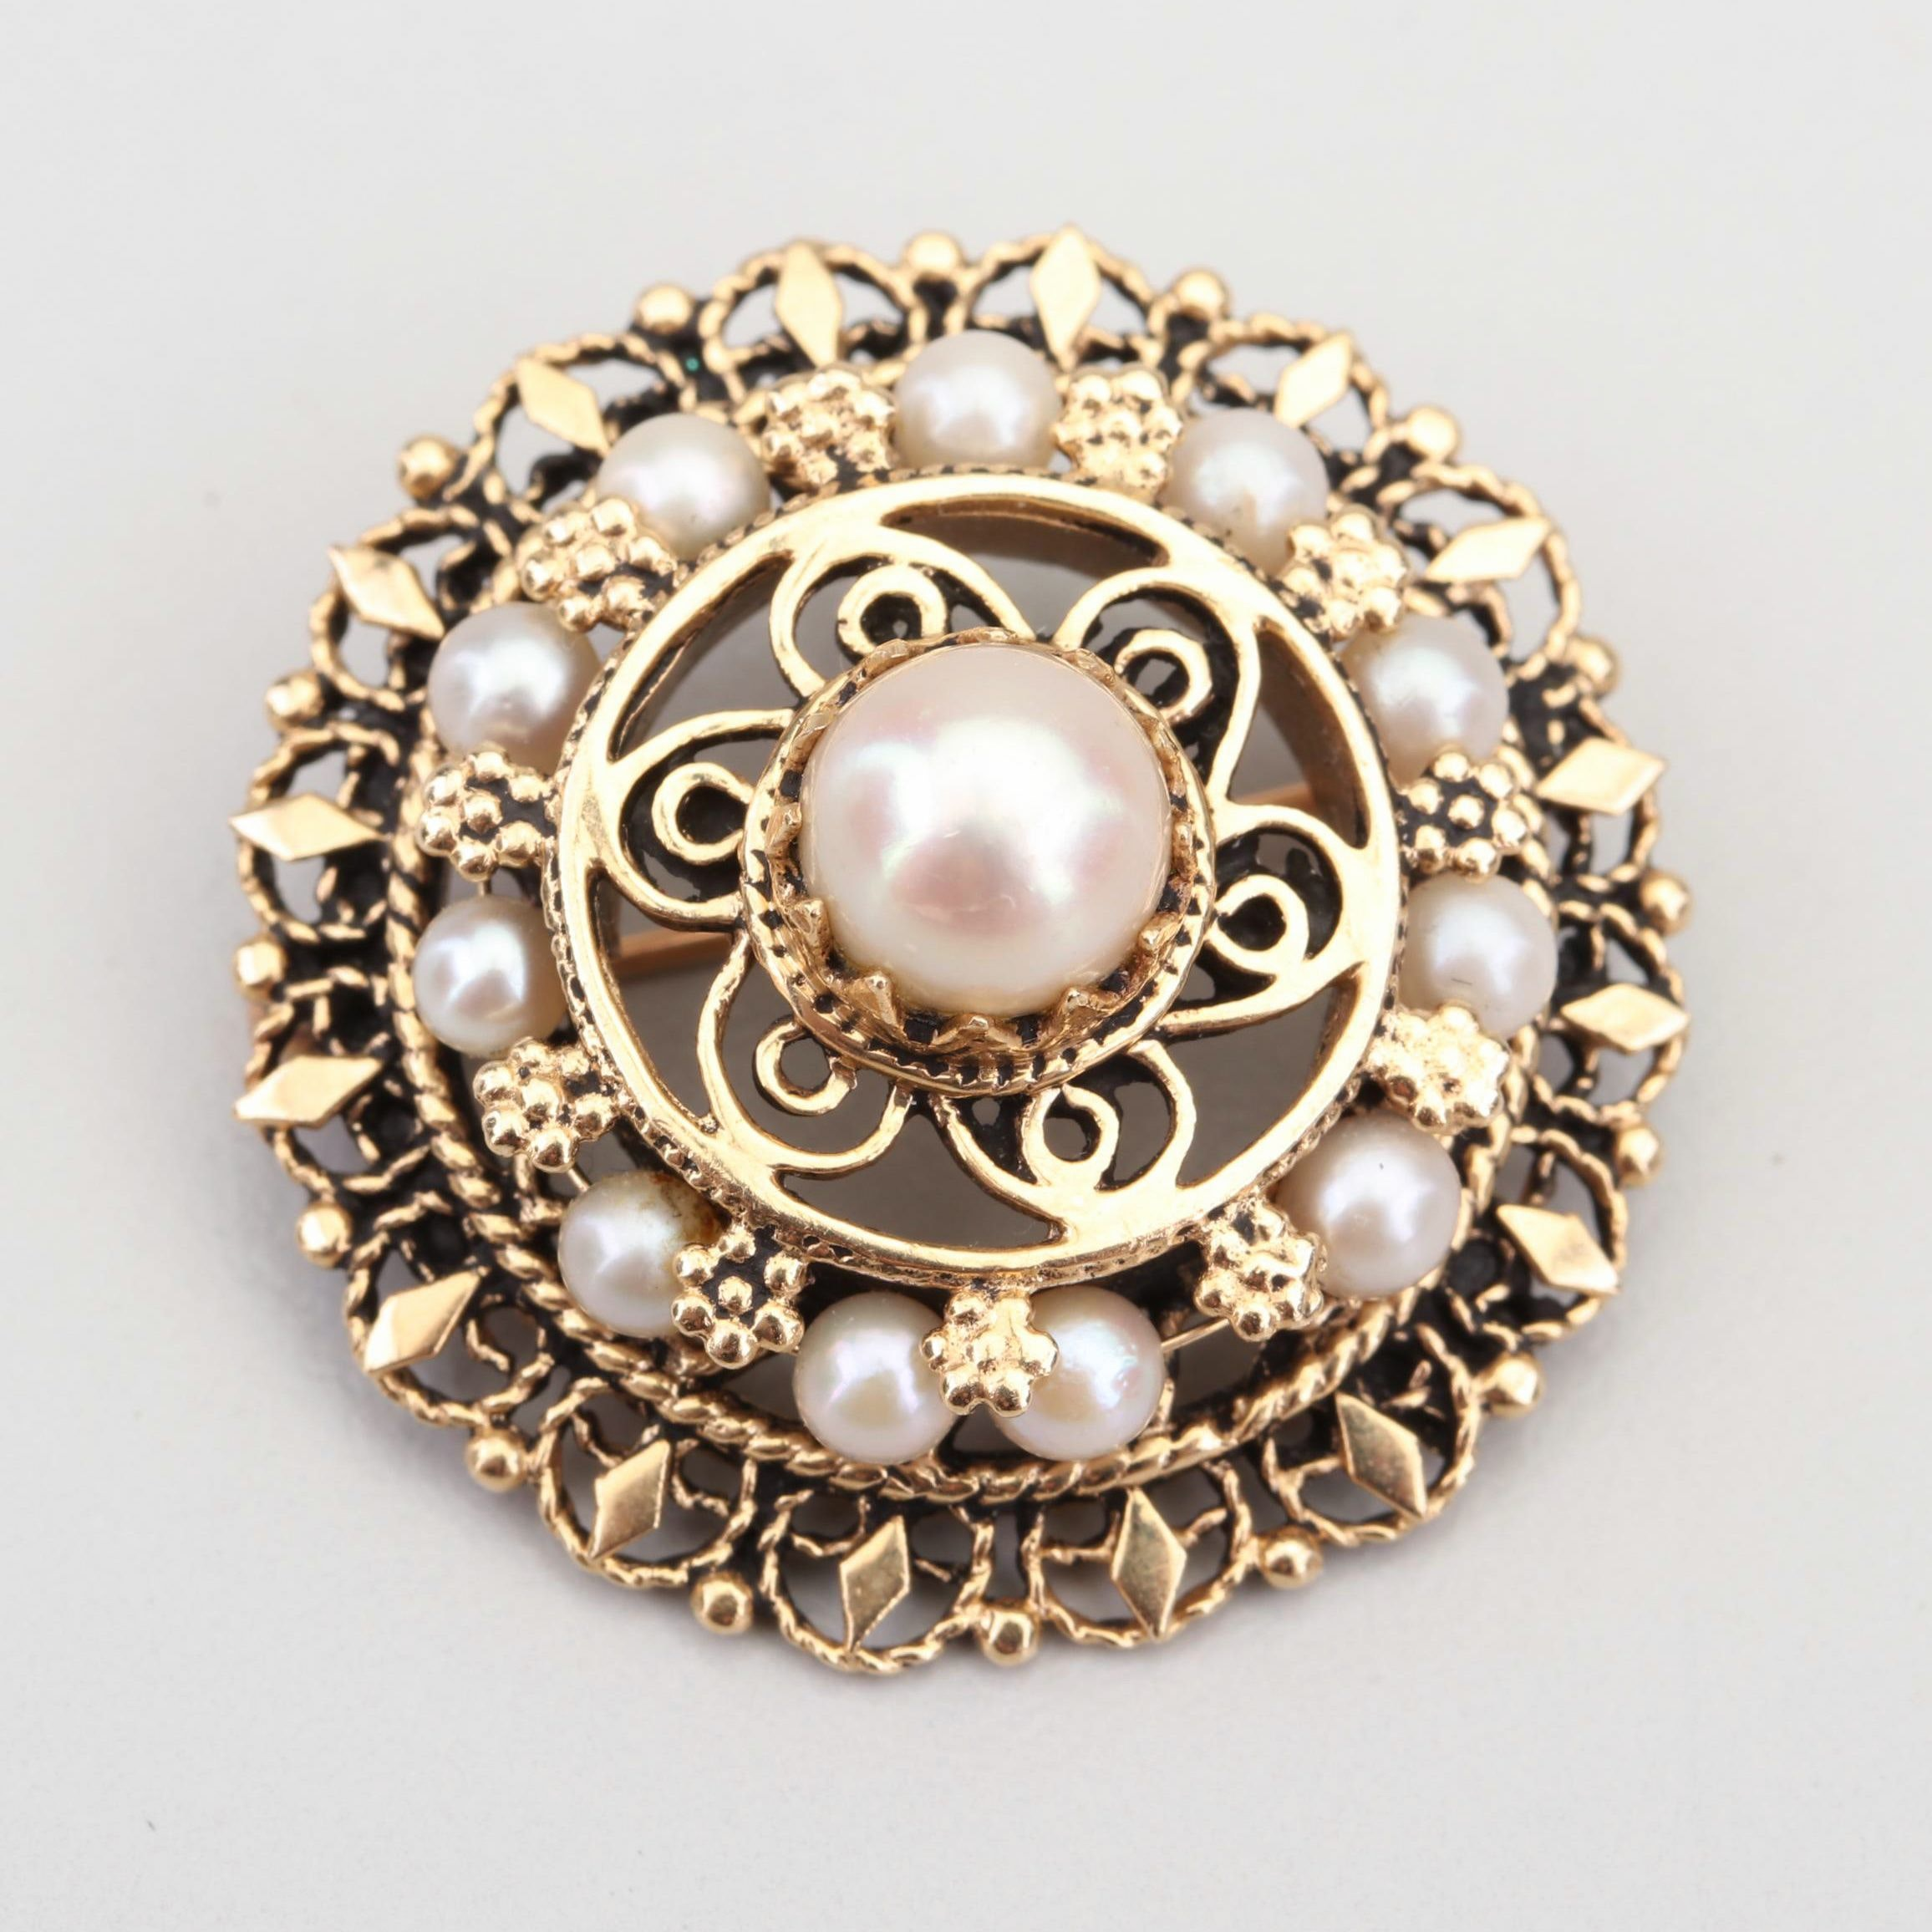 14K Yellow Gold Cultured Freshwater Pearl Brooch